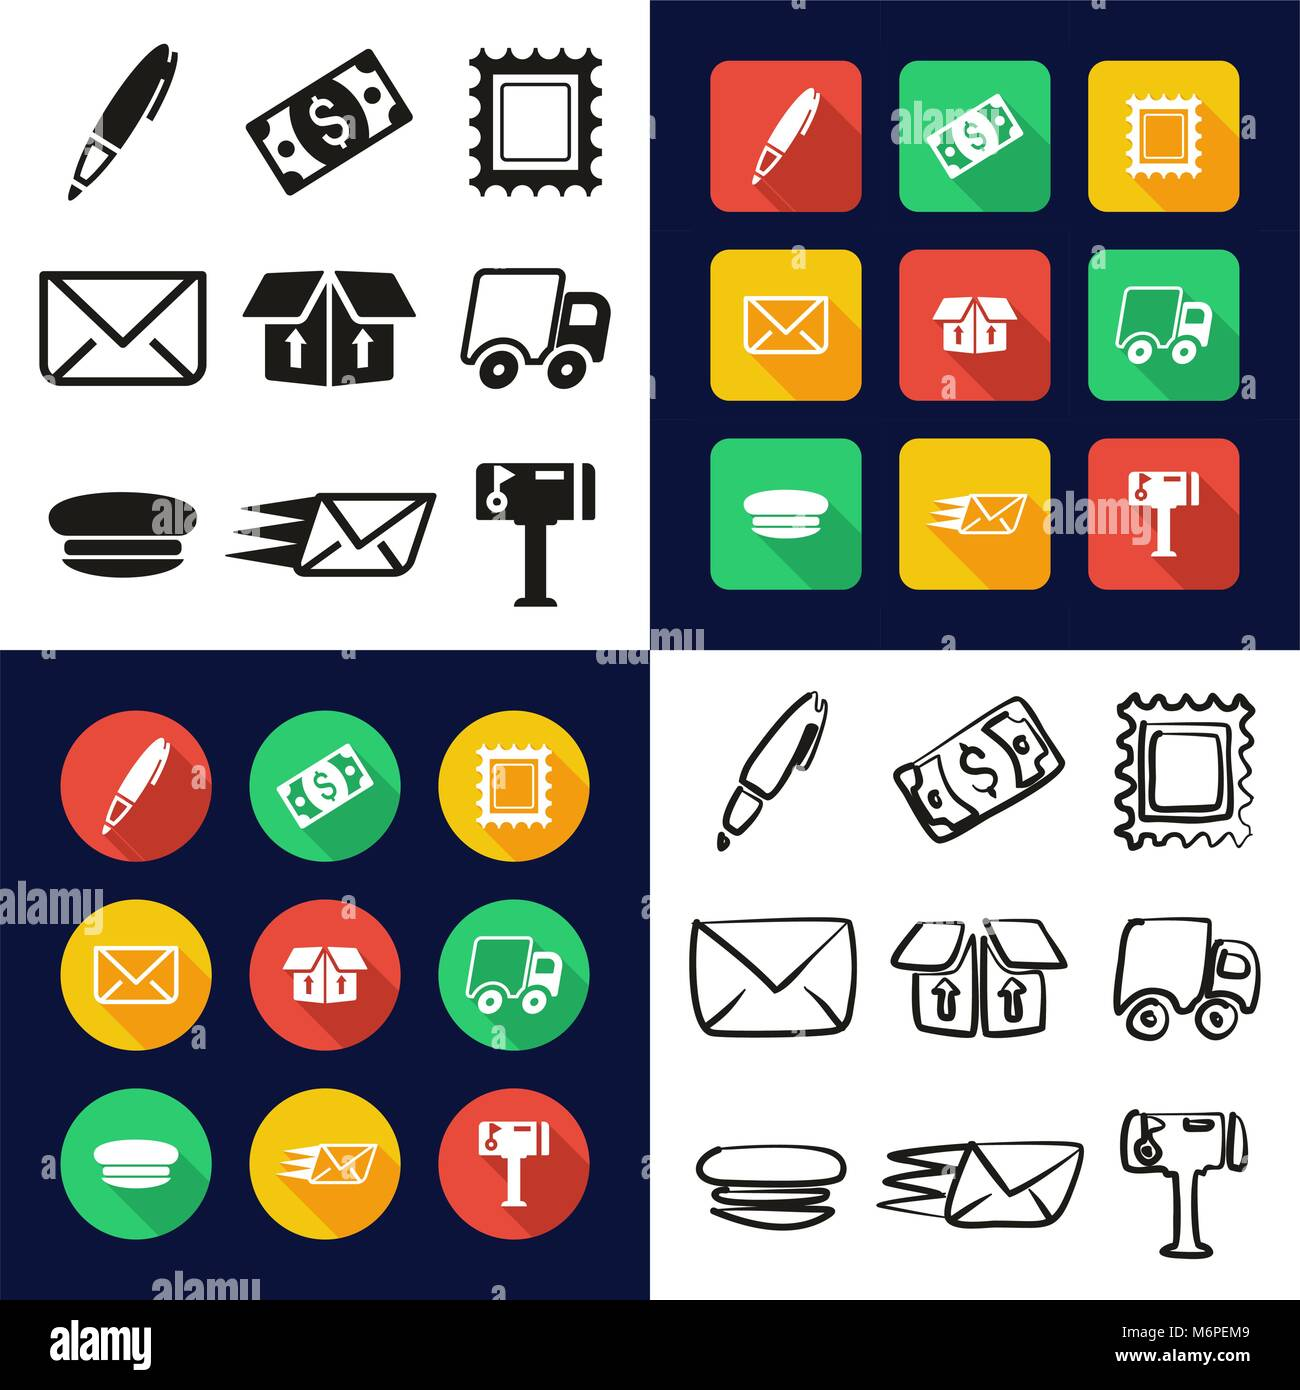 Post Office All in One Icons Black & White Color Flat Design Freehand Set - Stock Image